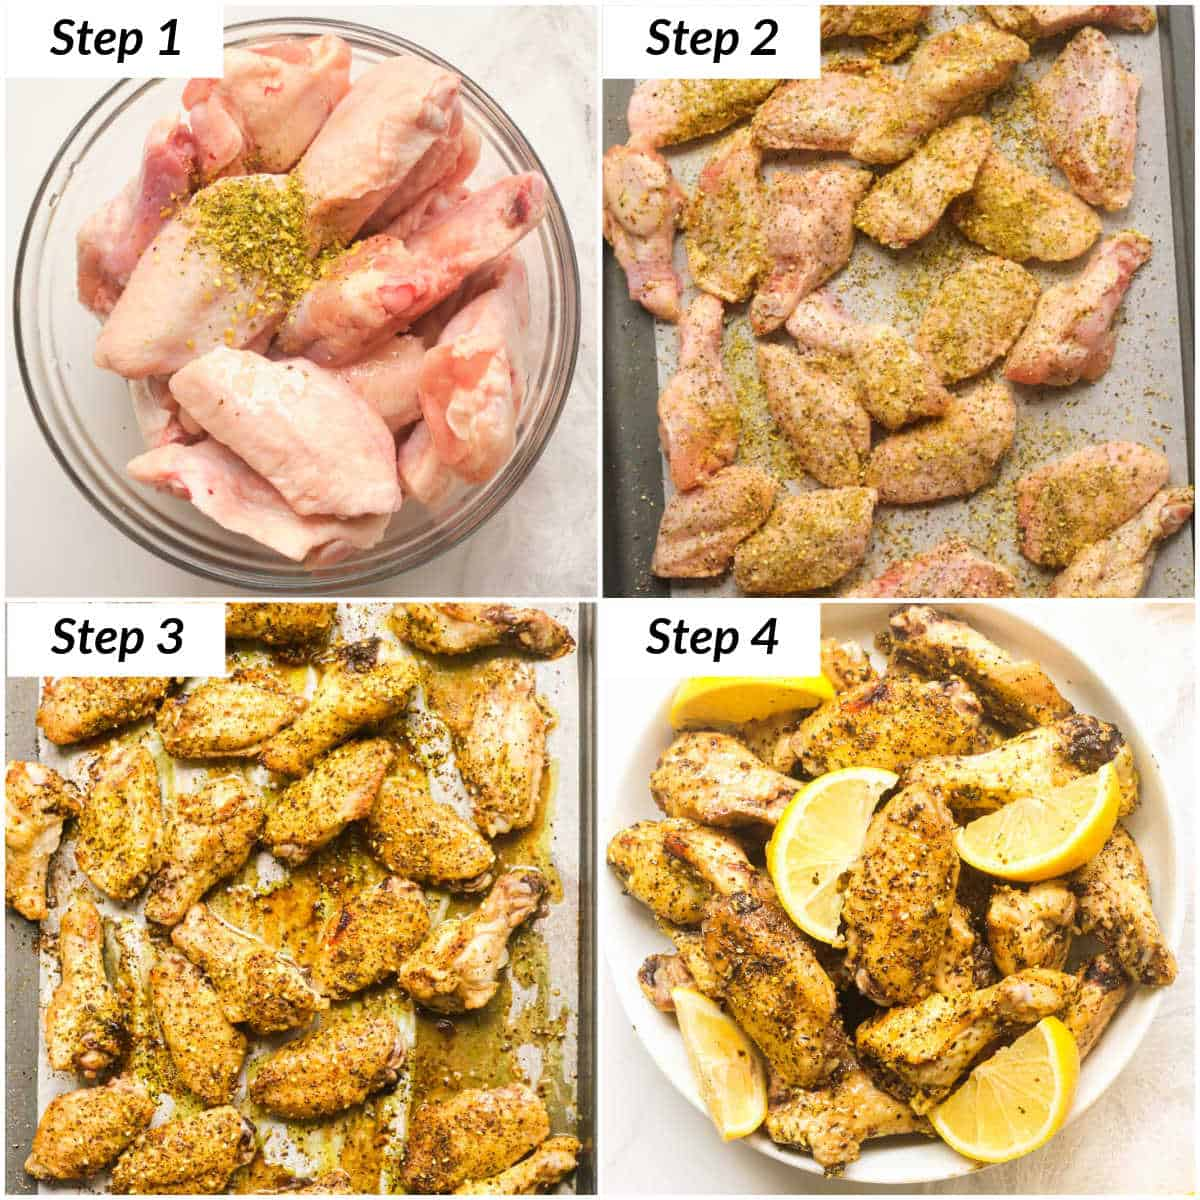 image collage showing the steps for making lemon pepper chicken wings